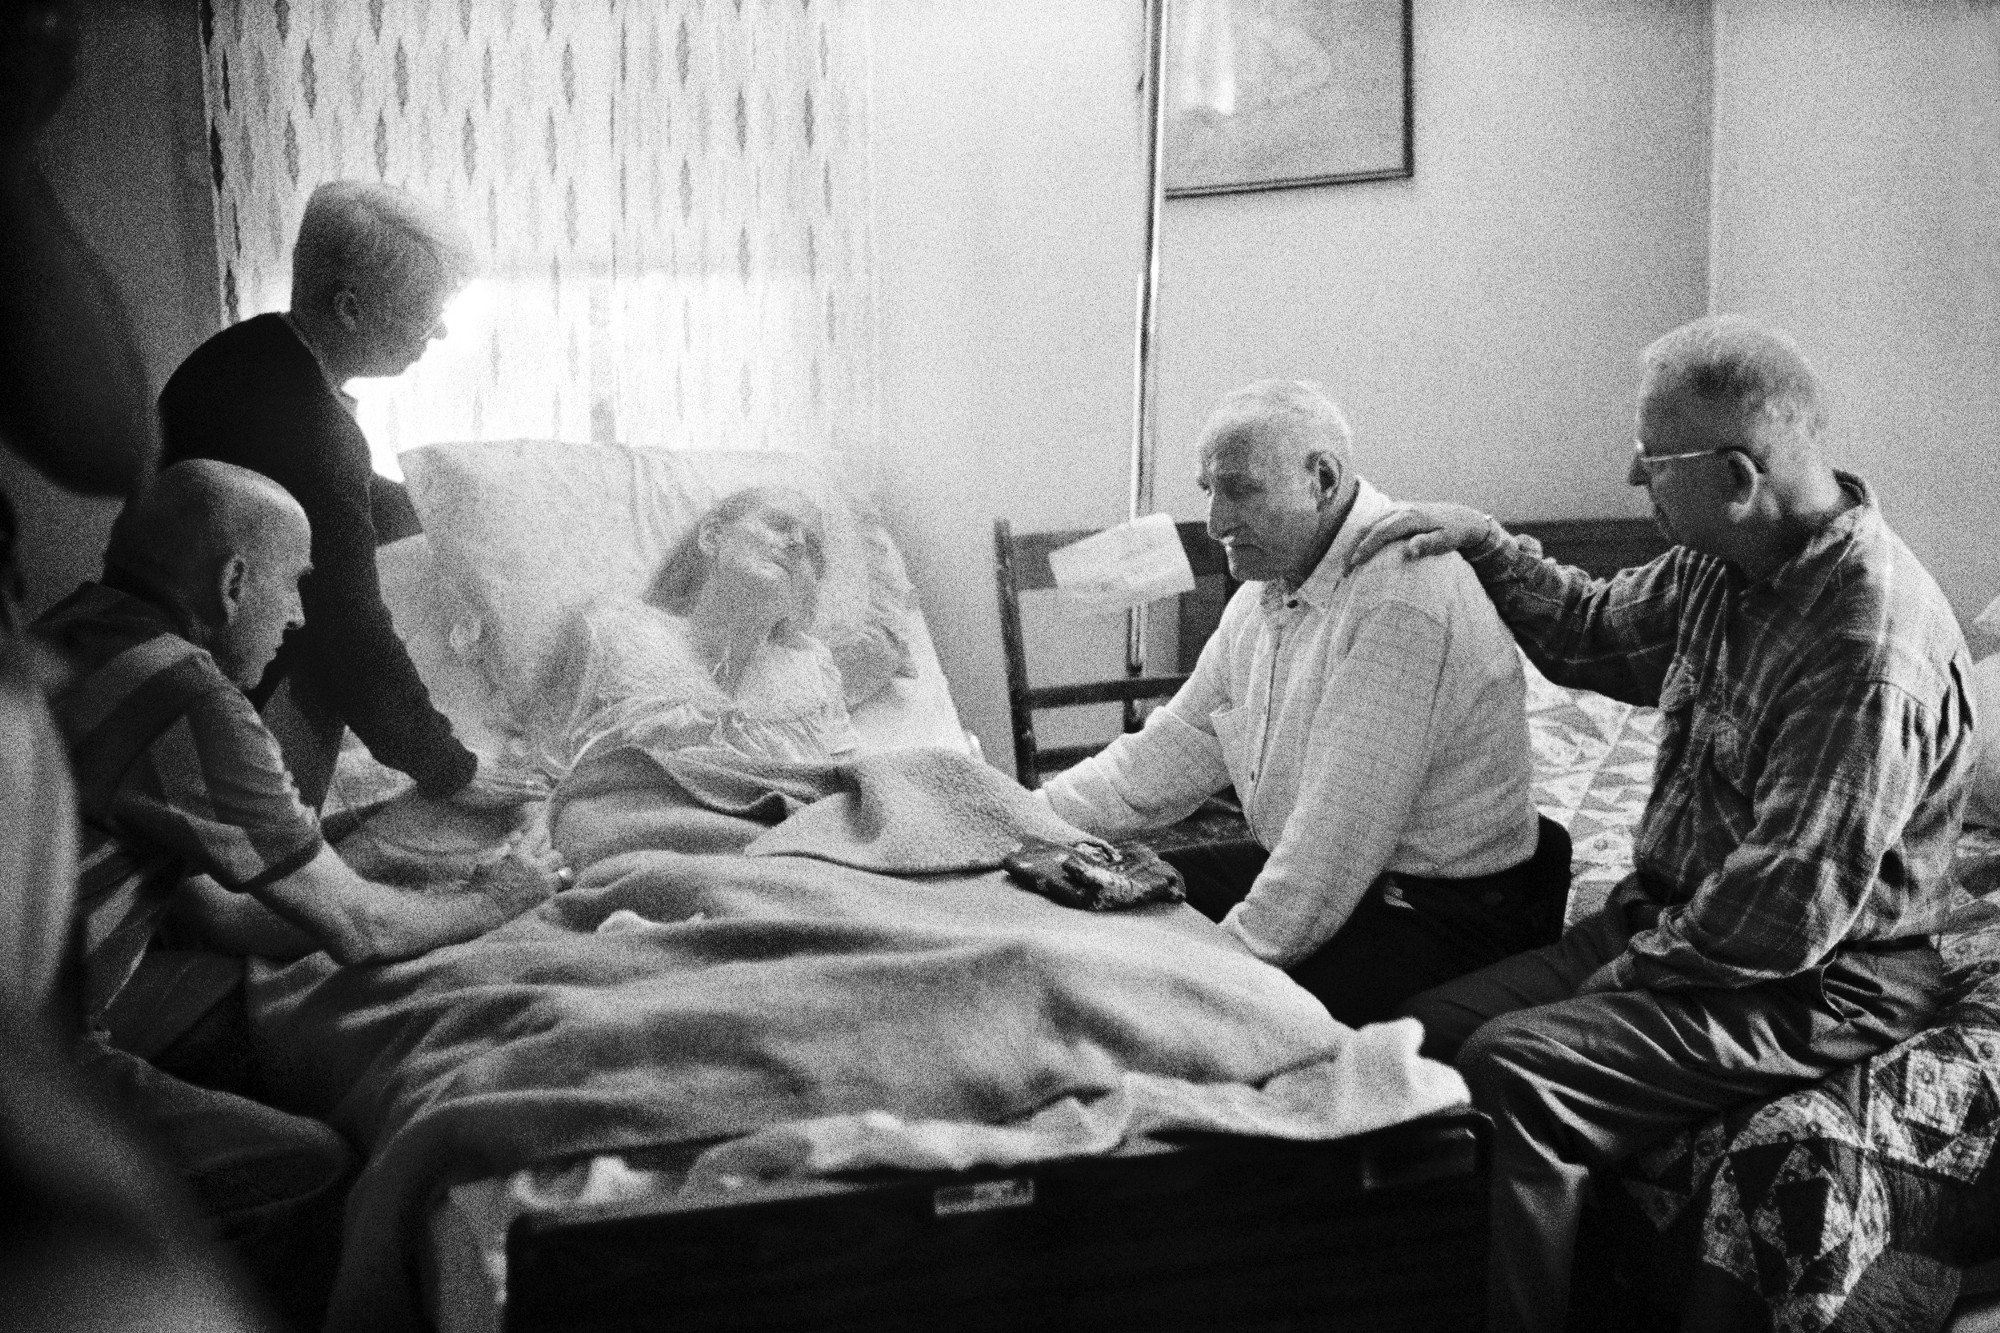 Maxine Peters finally passes away at home, surrounded by her family, friends and hospice aides in her home in Gladesville, by Ed Kashi from the VII photo agency